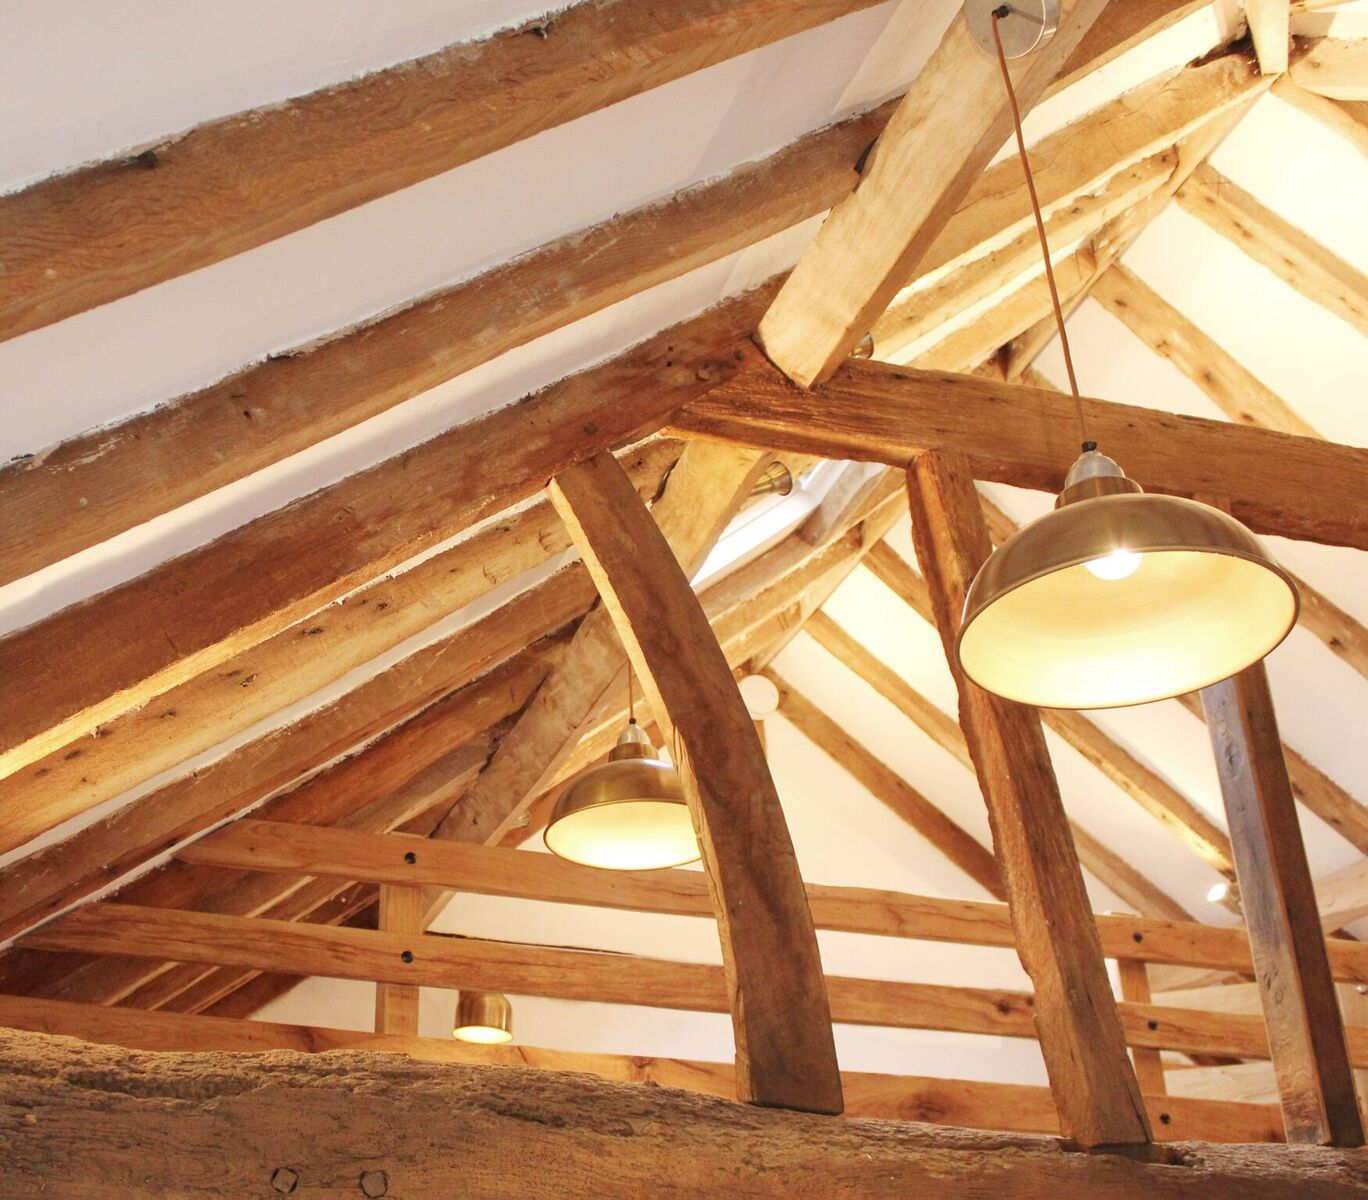 Wooden beams for attic interiors